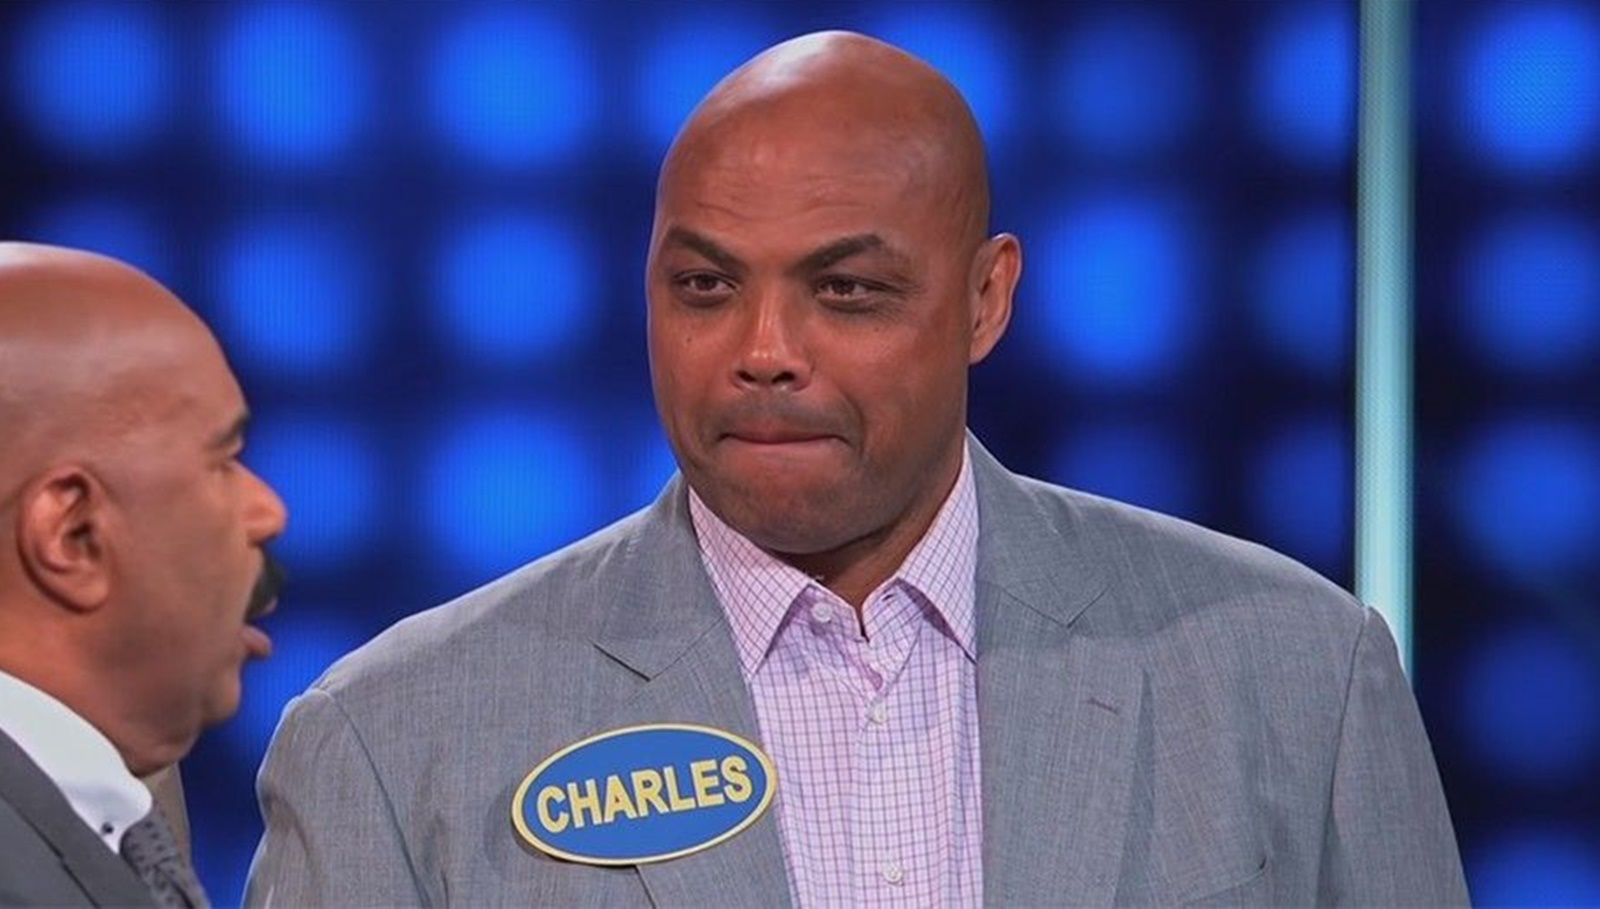 Charles Barkley Gives The CREEPIEST RIGHT Answer In 'Family Feud' History